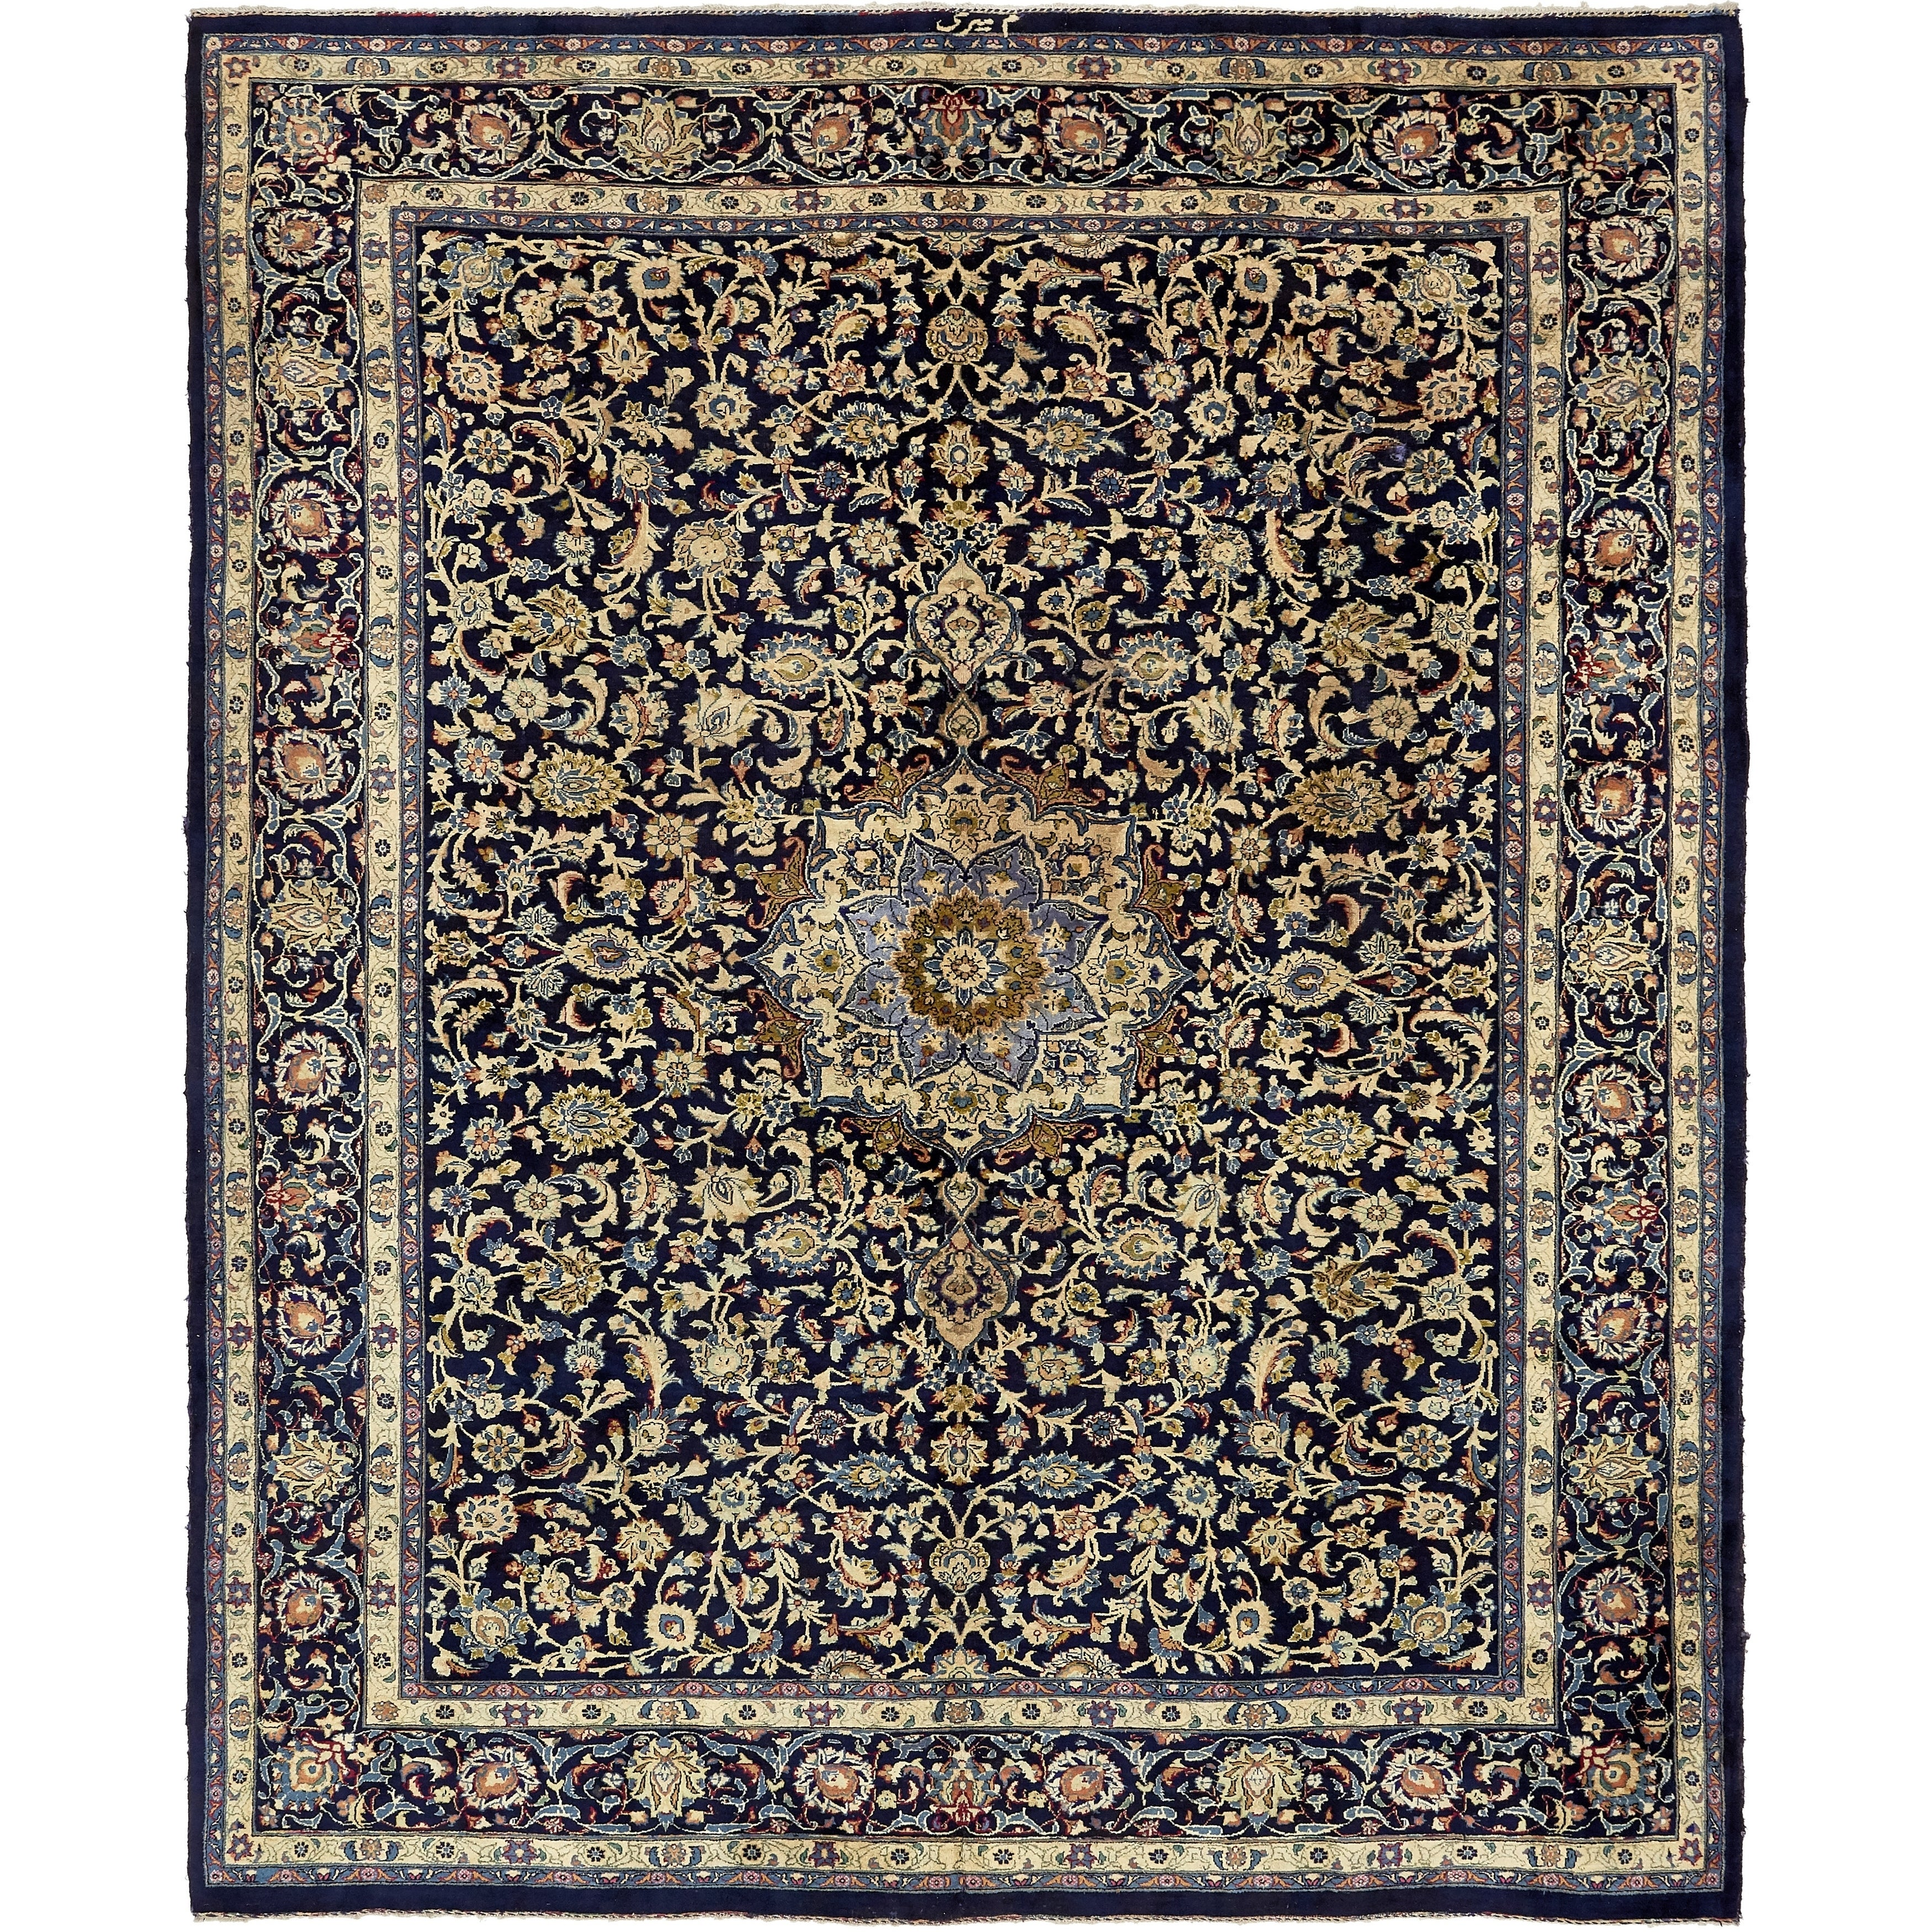 Hand Knotted Kashmar Semi Antique Wool Area Rug - 10 2 x 12 7 (Navy blue - 10 2 x 12 7)